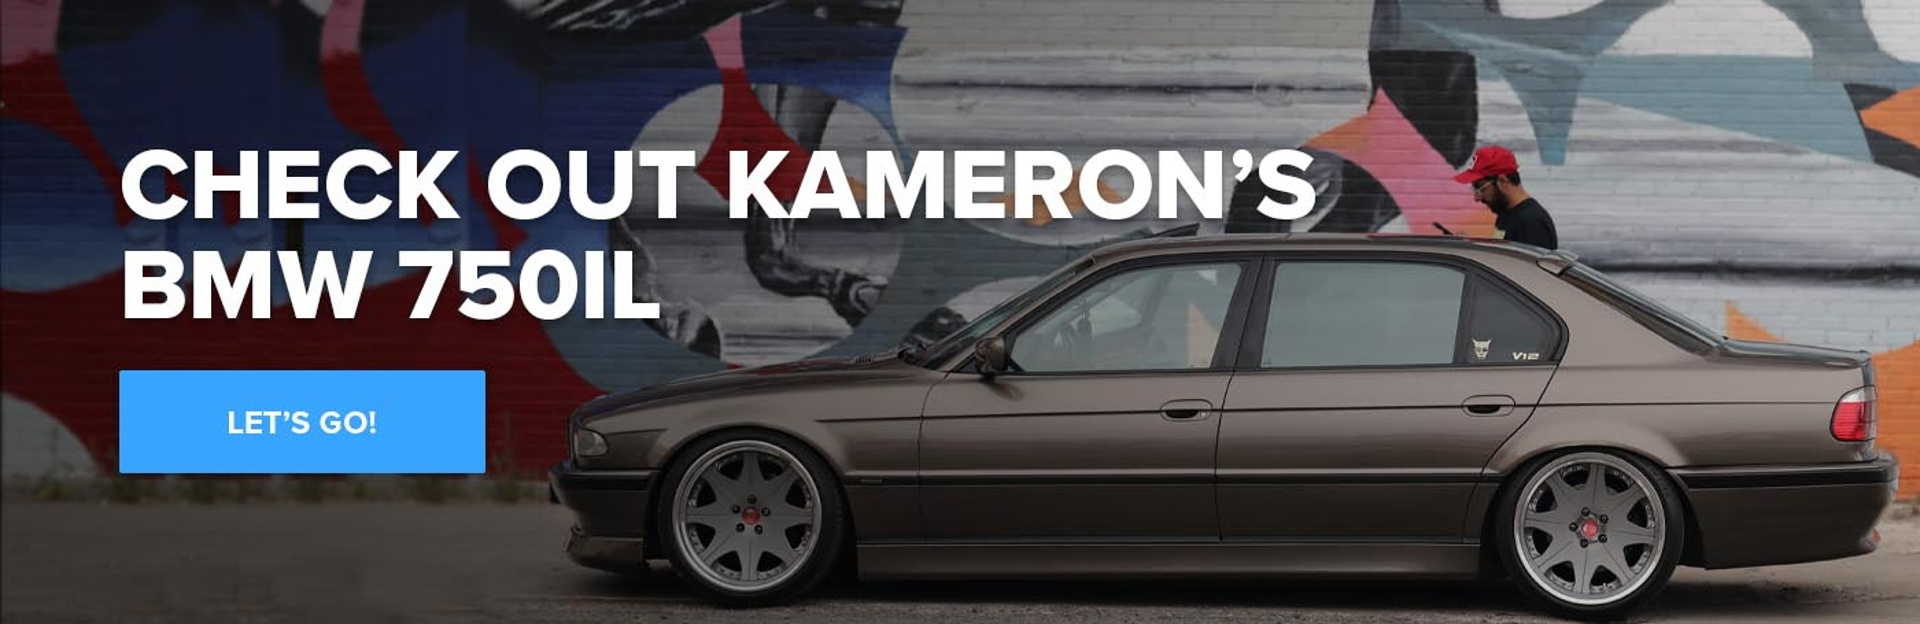 Check Out Kameron's BMW 750iL